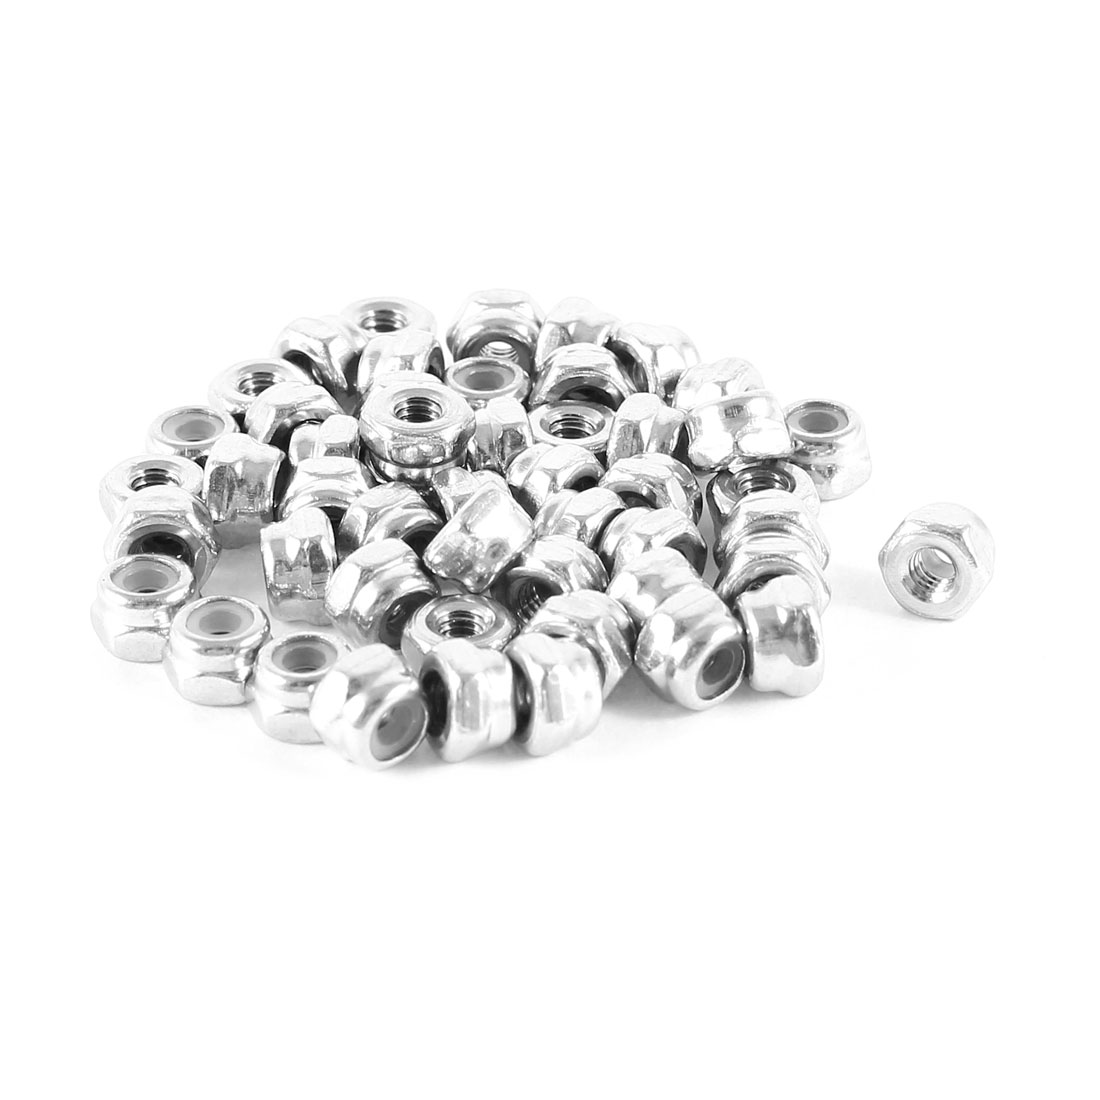 50 Pcs 304HC A2 70 A2-70 Stainless Steel Hex Nylock Nyloc Lock Nut M2.5 2.5mm